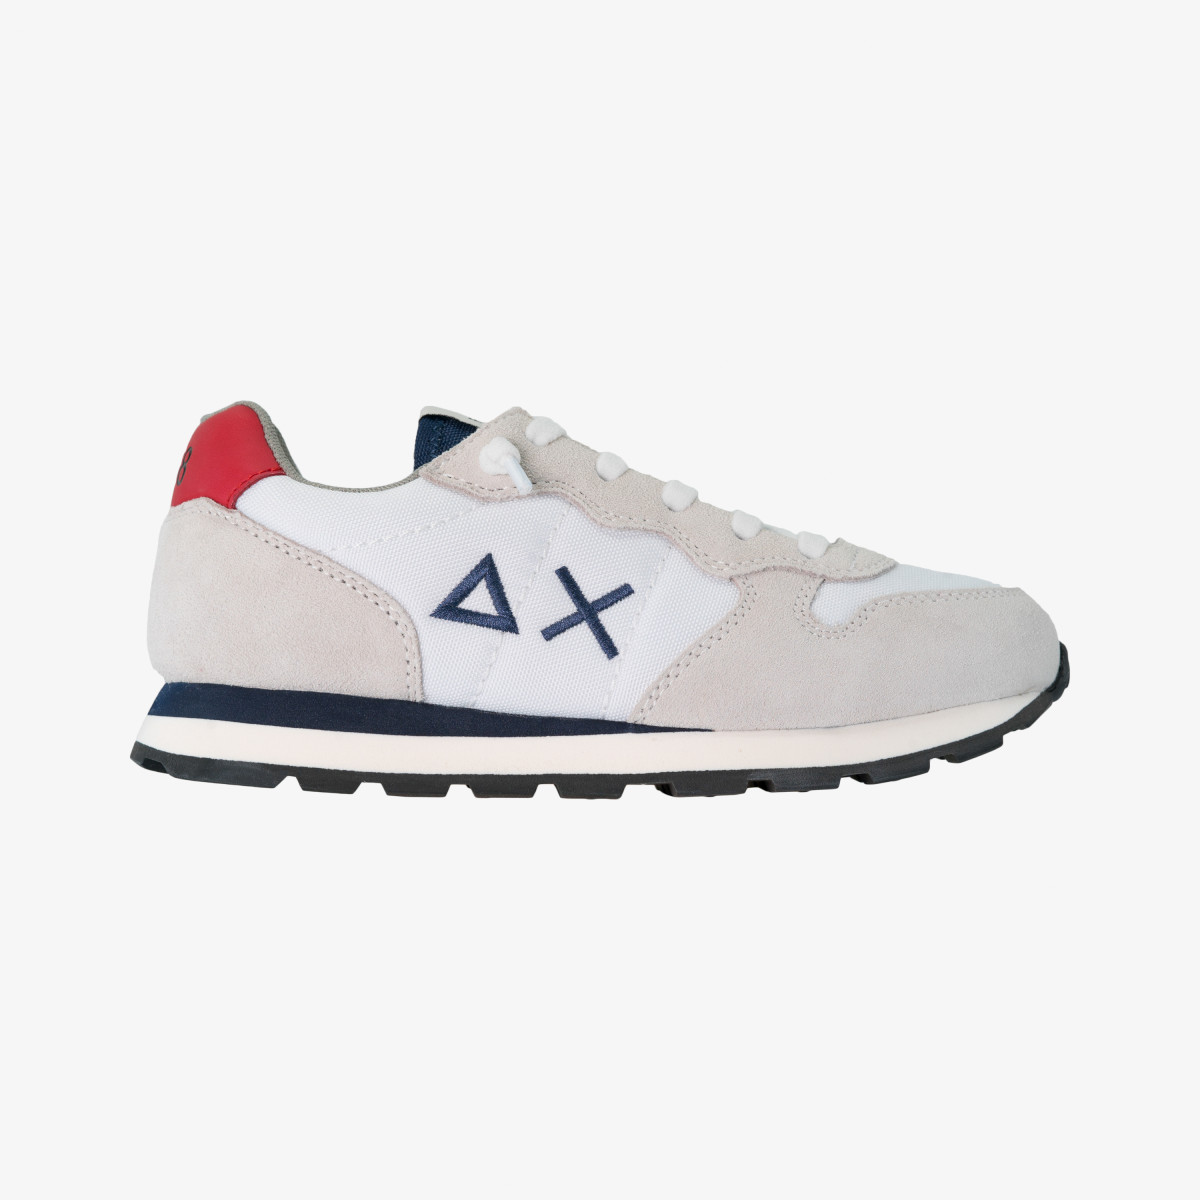 BOY'S TOM SOLID NYLON WHITE/NAVY BLUE